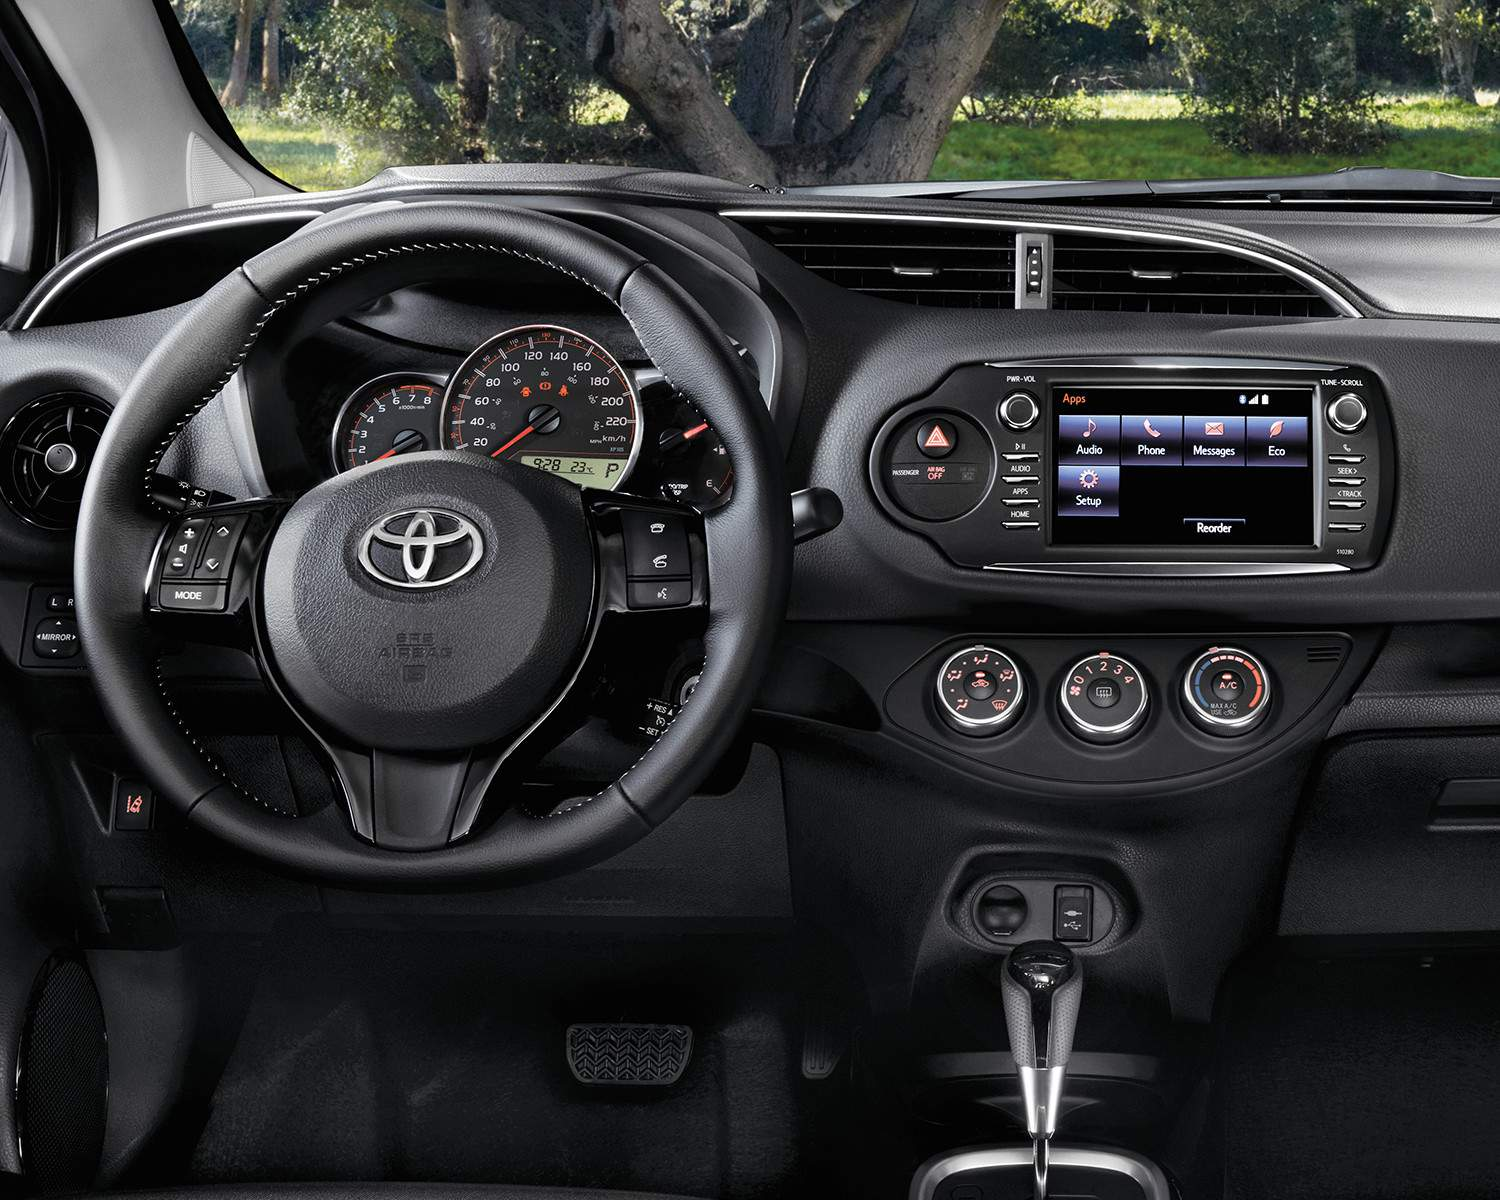 2018 Toyota Yaris Hatchback Interior Dashboard